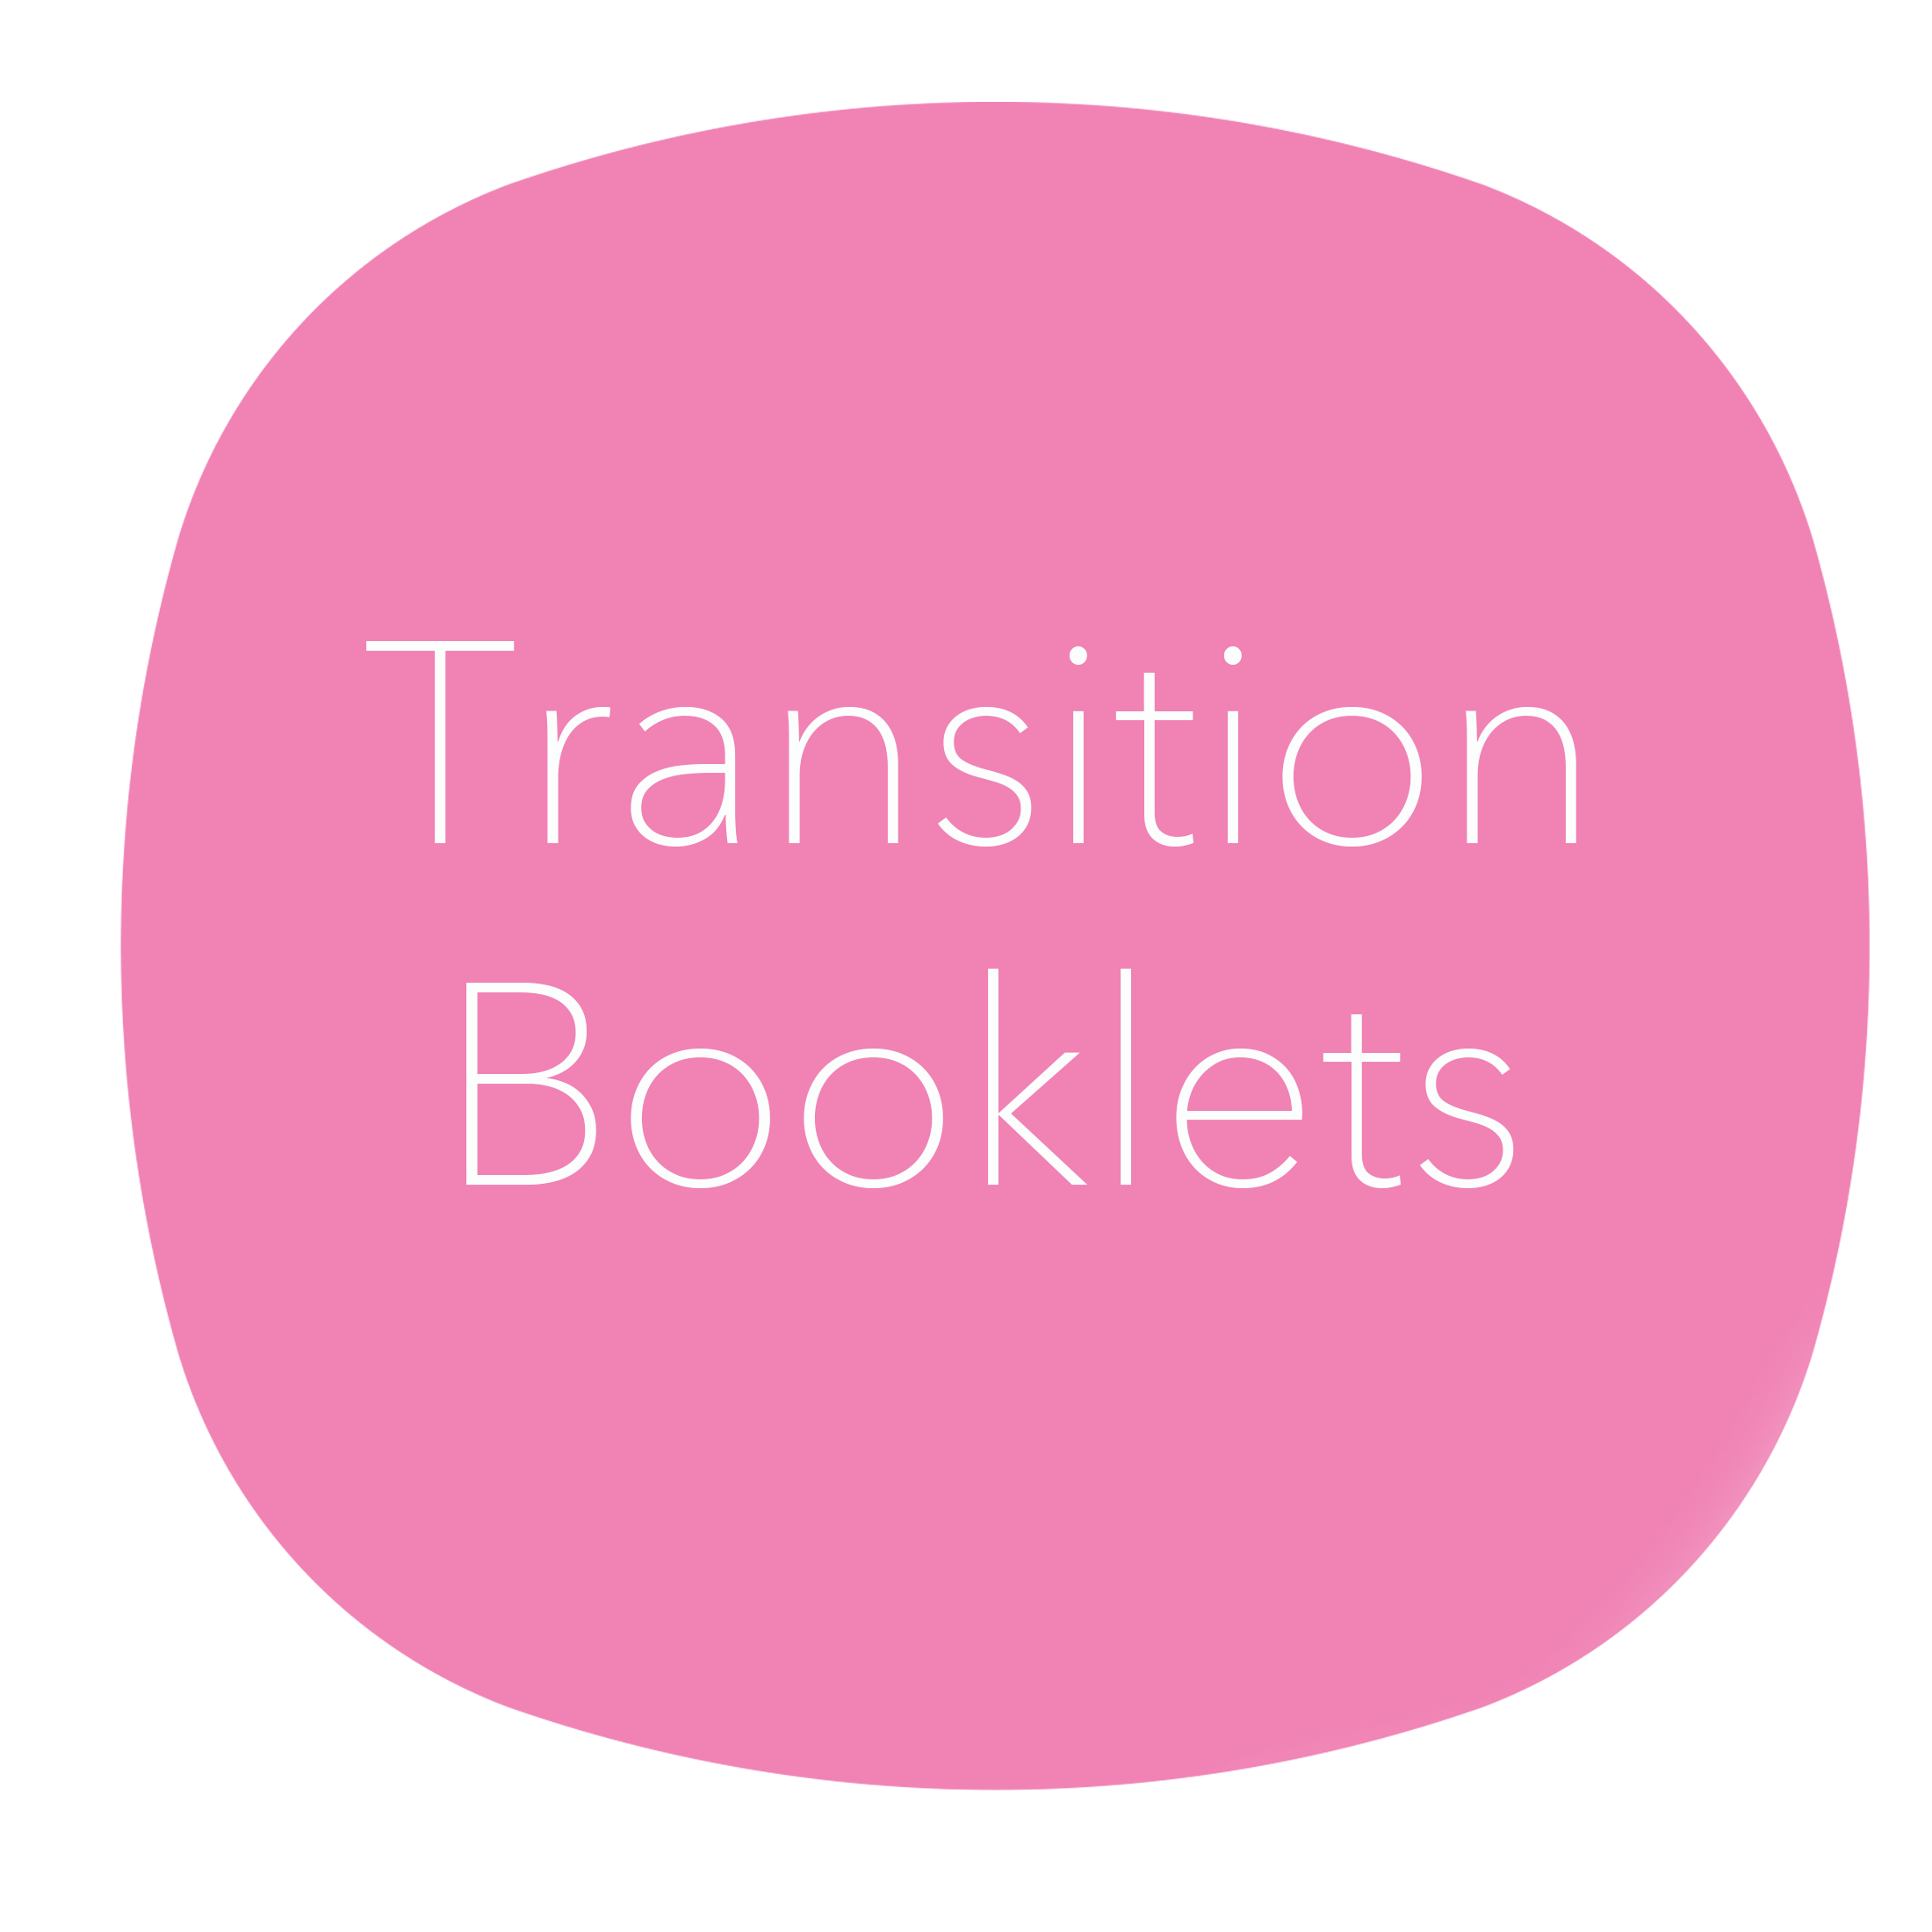 Transition Bookets